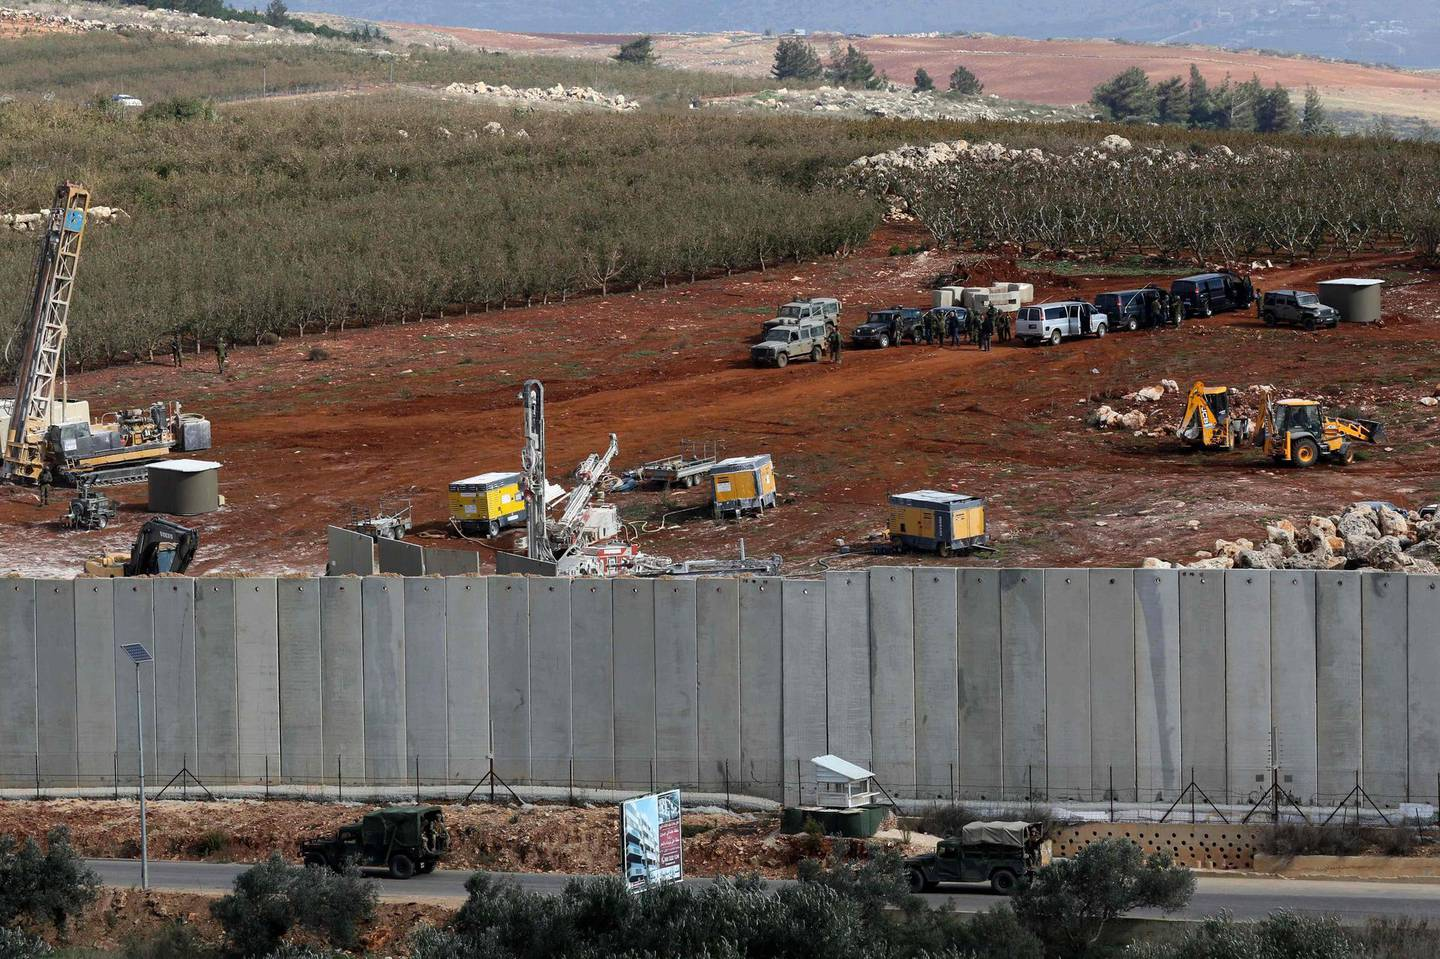 A picture taken on December 5, 2018 in the southern Lebanese village of Kfar Kila near the border with Israel shows Israeli machinery (top) operating next to the concrete border wall. Israel had announced on December 4 that it had discovered Hezbollah tunnels infiltrating its territory from Lebanon and launched an operation to destroy them. / AFP / Mahmoud ZAYYAT